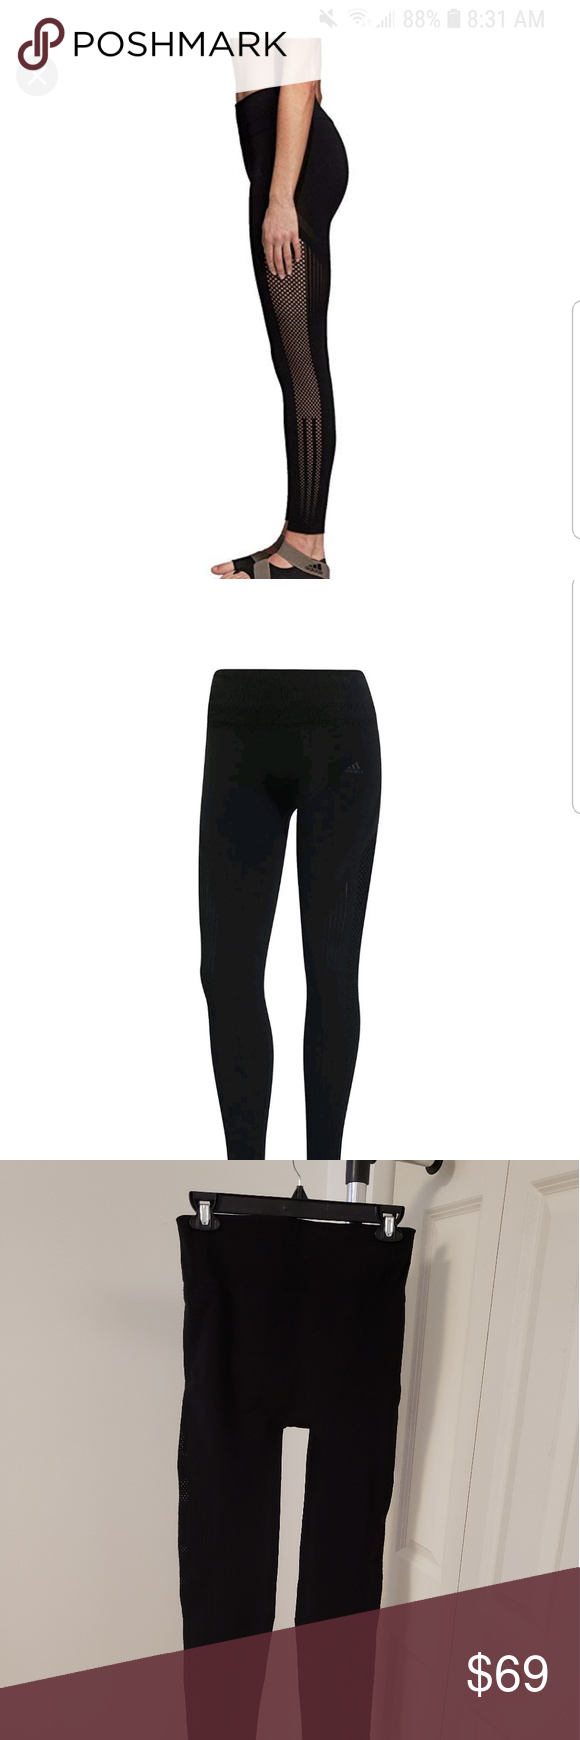 get new special for shoe the best Adidas Noir Tights Collants wrpknt tights HR 7/8 Adidas Noir ...